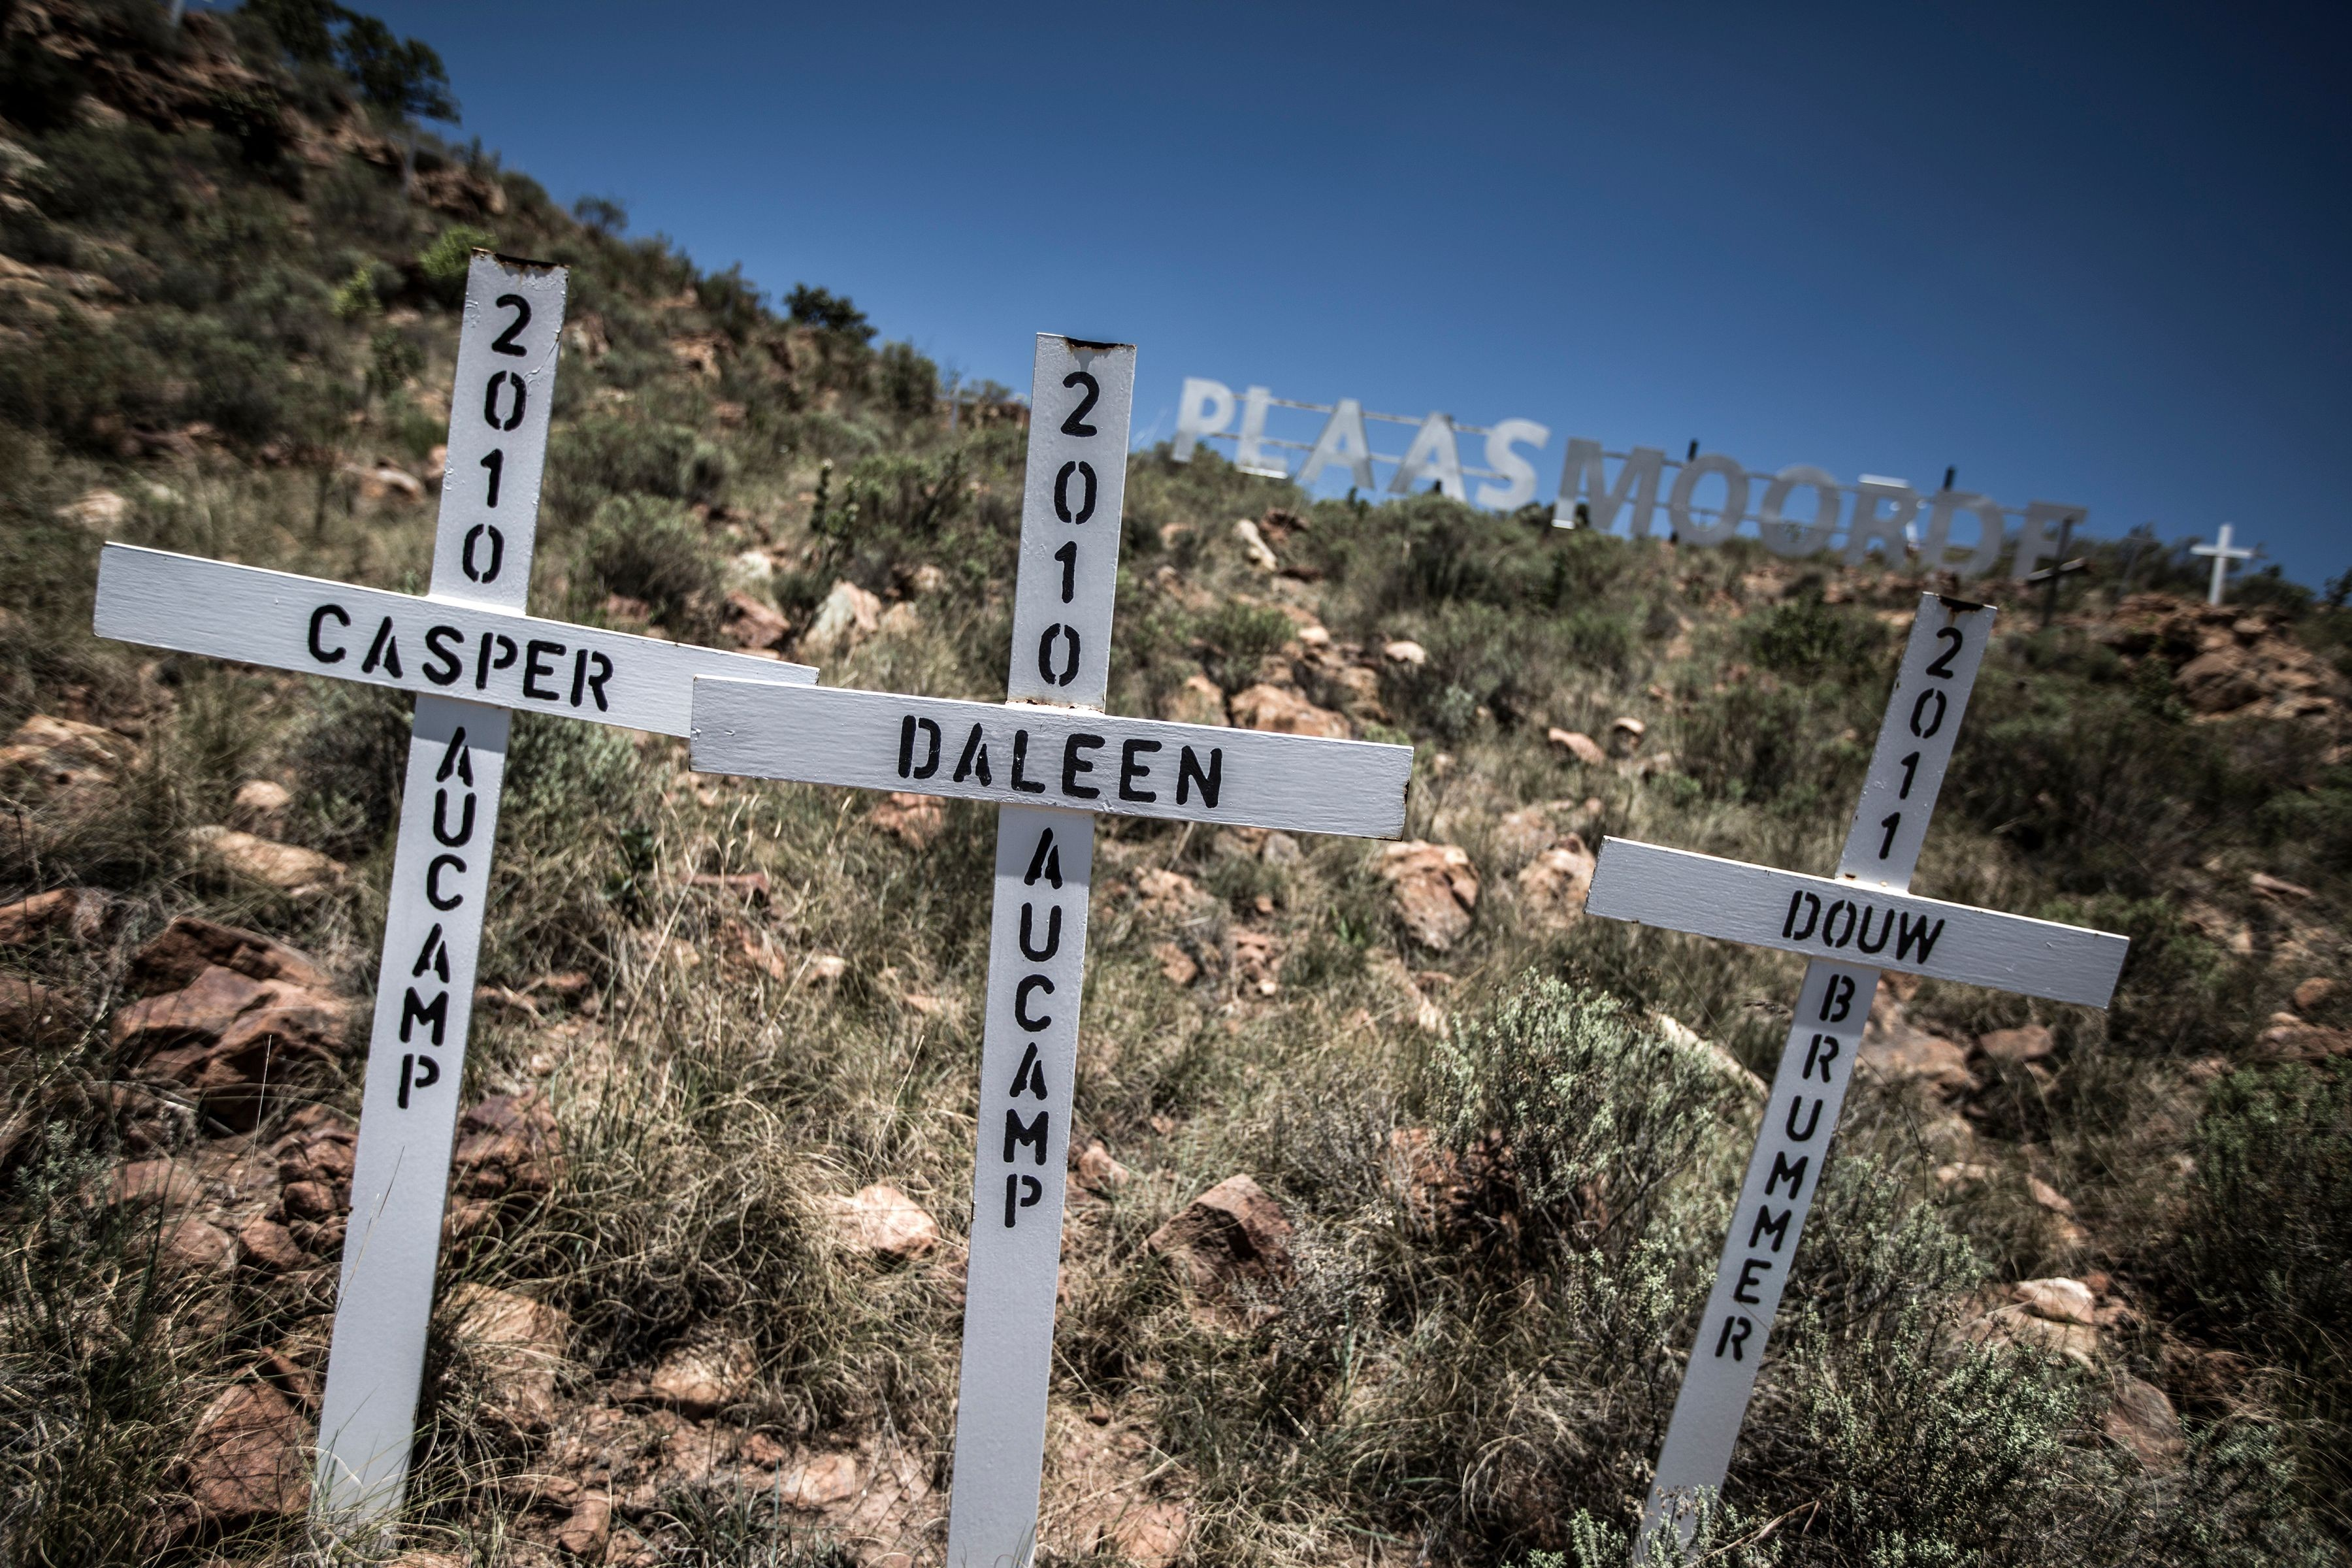 Murders of farmers in South Africa at 20-year low